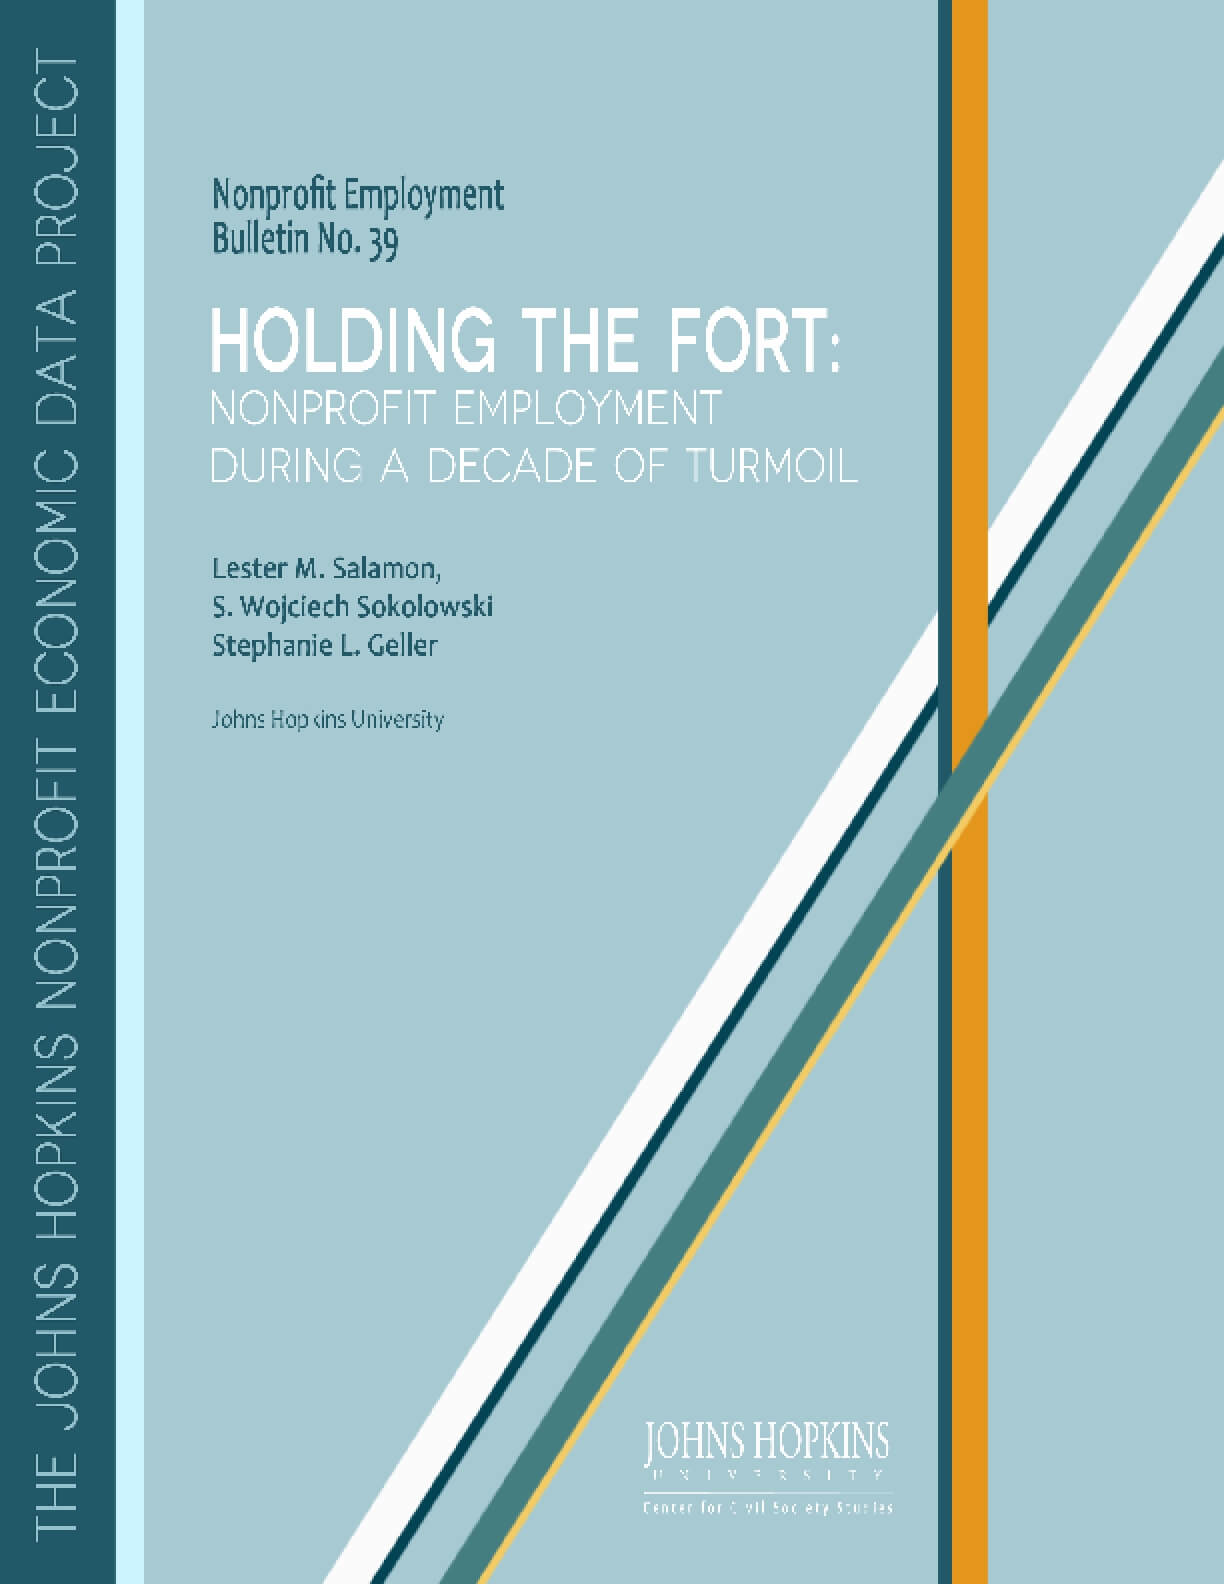 Holding the Fort: Nonprofit Employment During a Decade of Turmoil